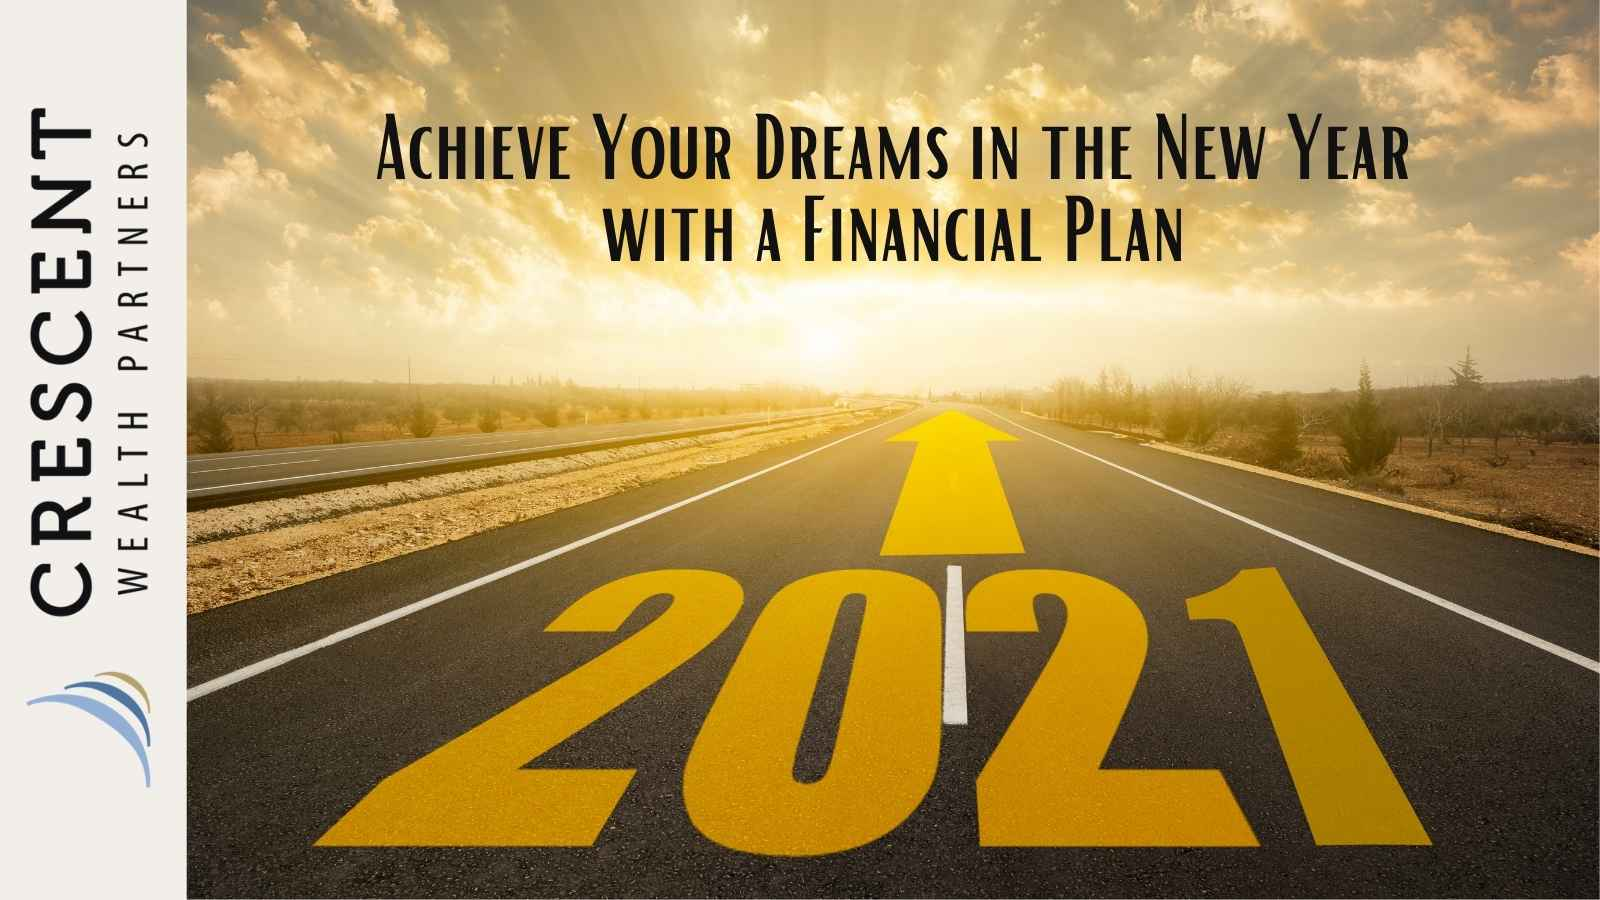 Financial Plan – Achieve Your Dreams in the New Year